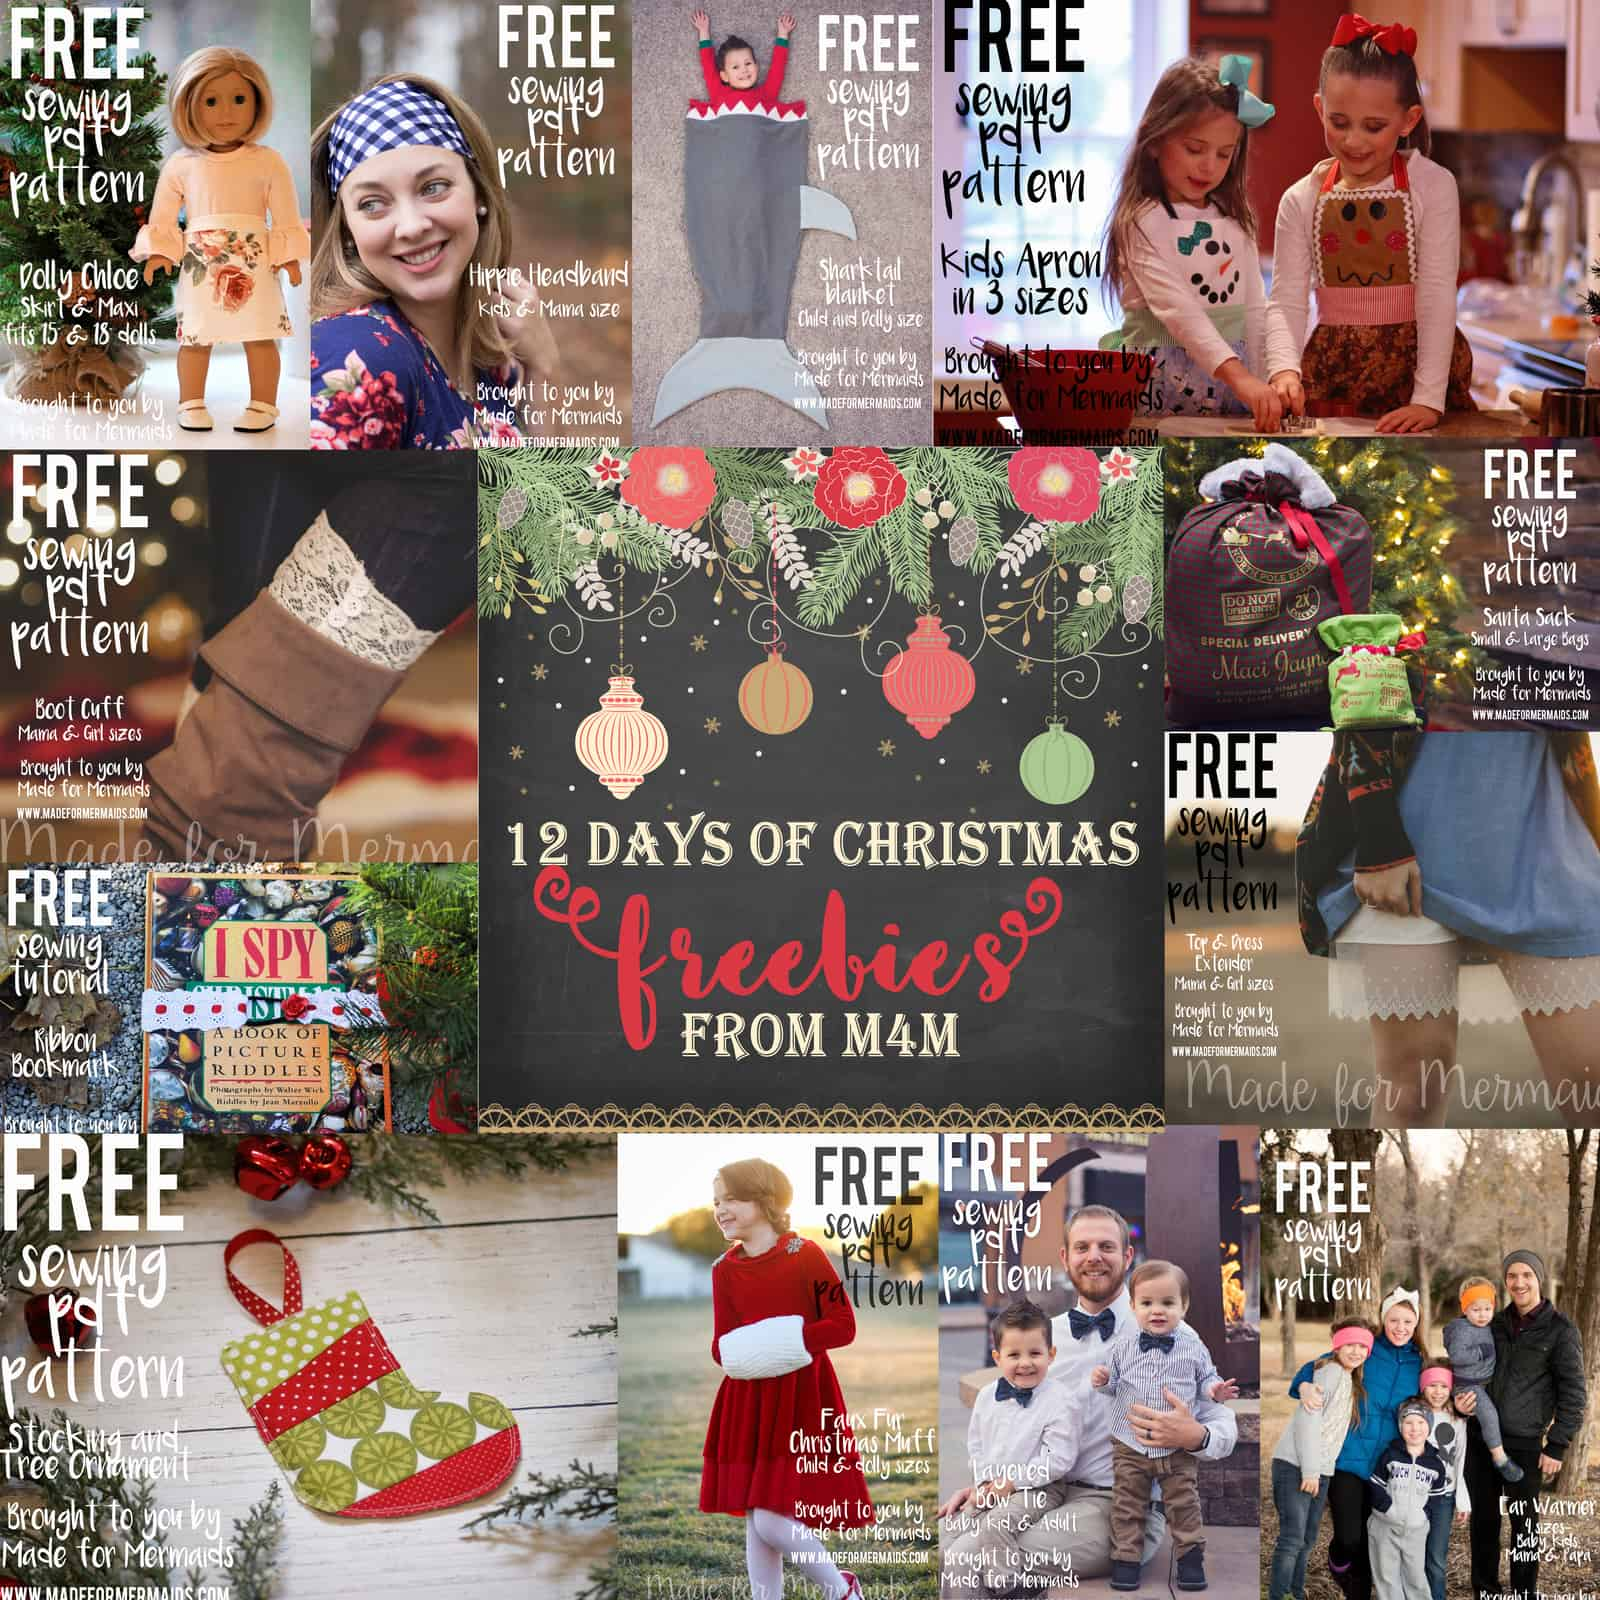 12 Days of Christmas Freebies 2016 Round Up